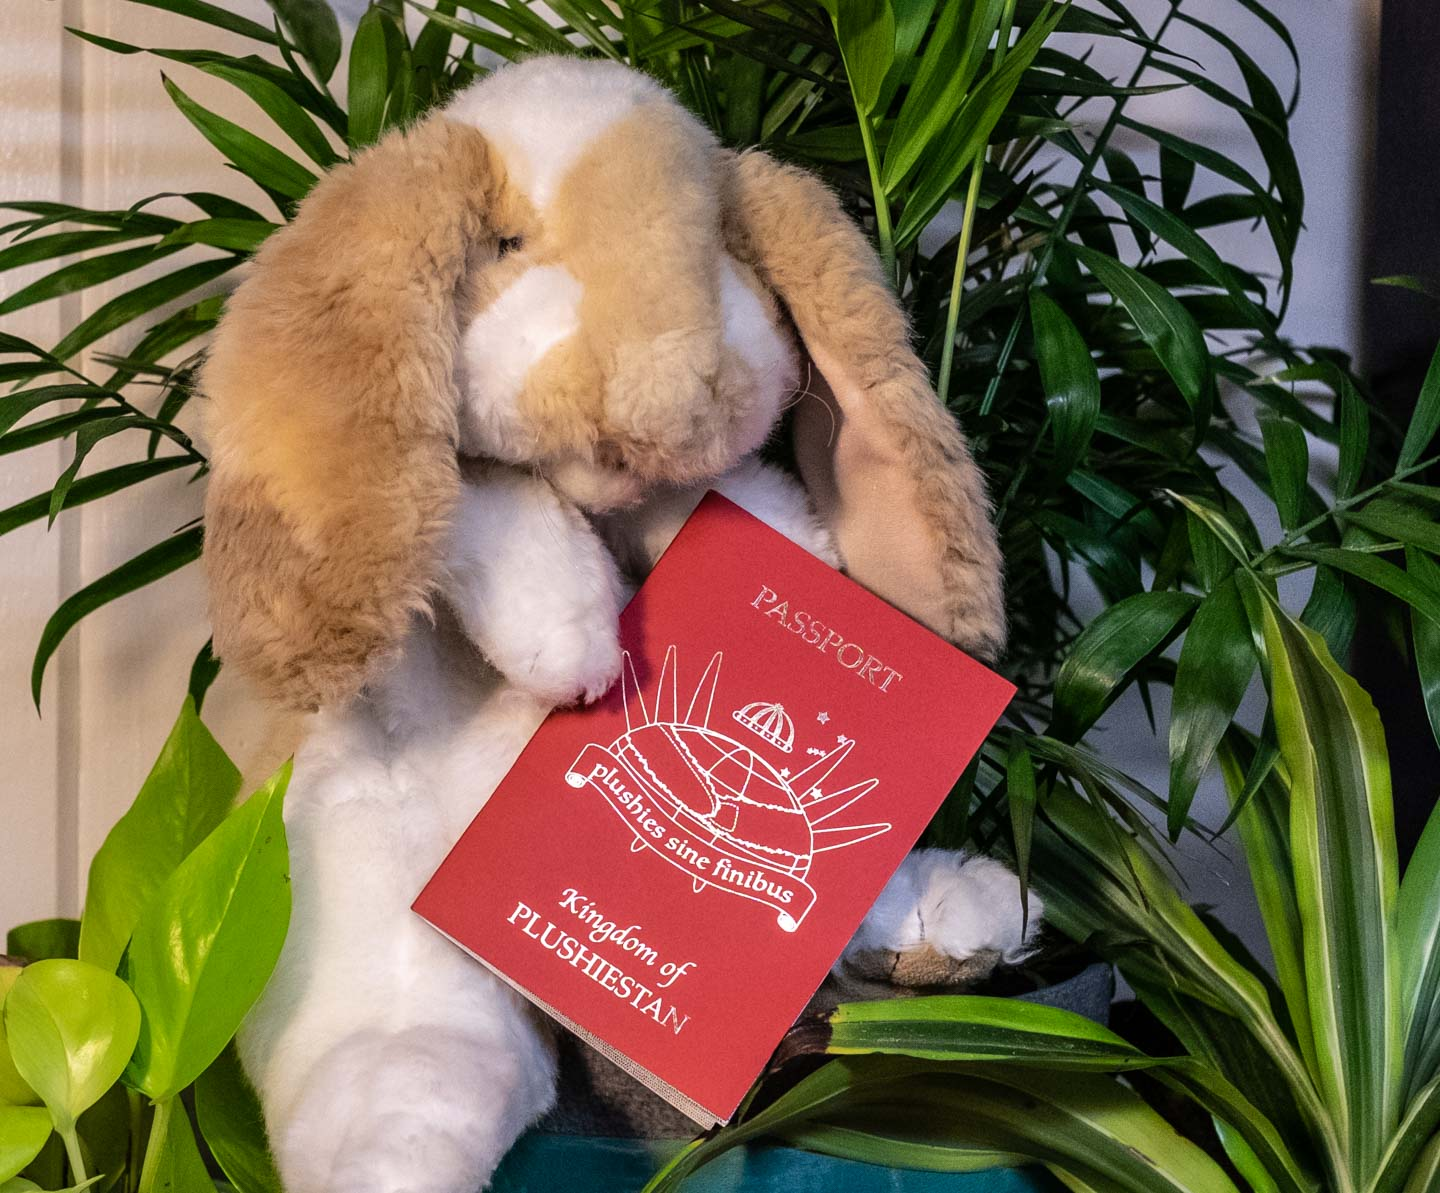 Stuffed bunny with official plushie passport